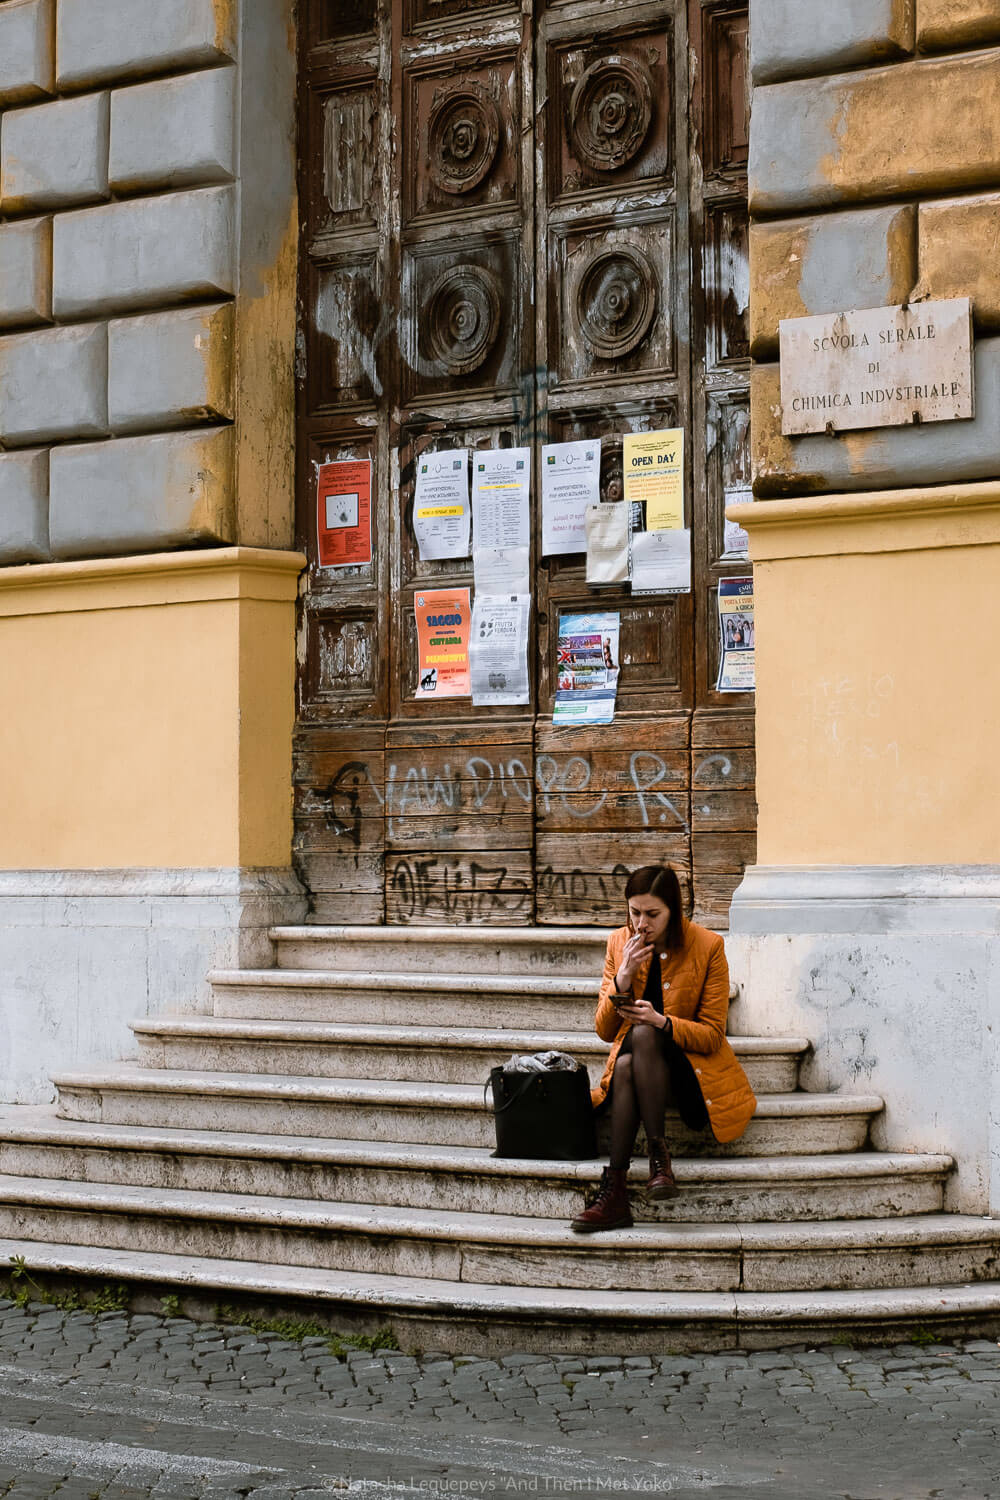 """Woman sitting on steps in Rome. Travel photography and guide by © Natasha Lequepeys for """"And Then I Met Yoko"""". #rome #italy #travelblog #travelphotography"""